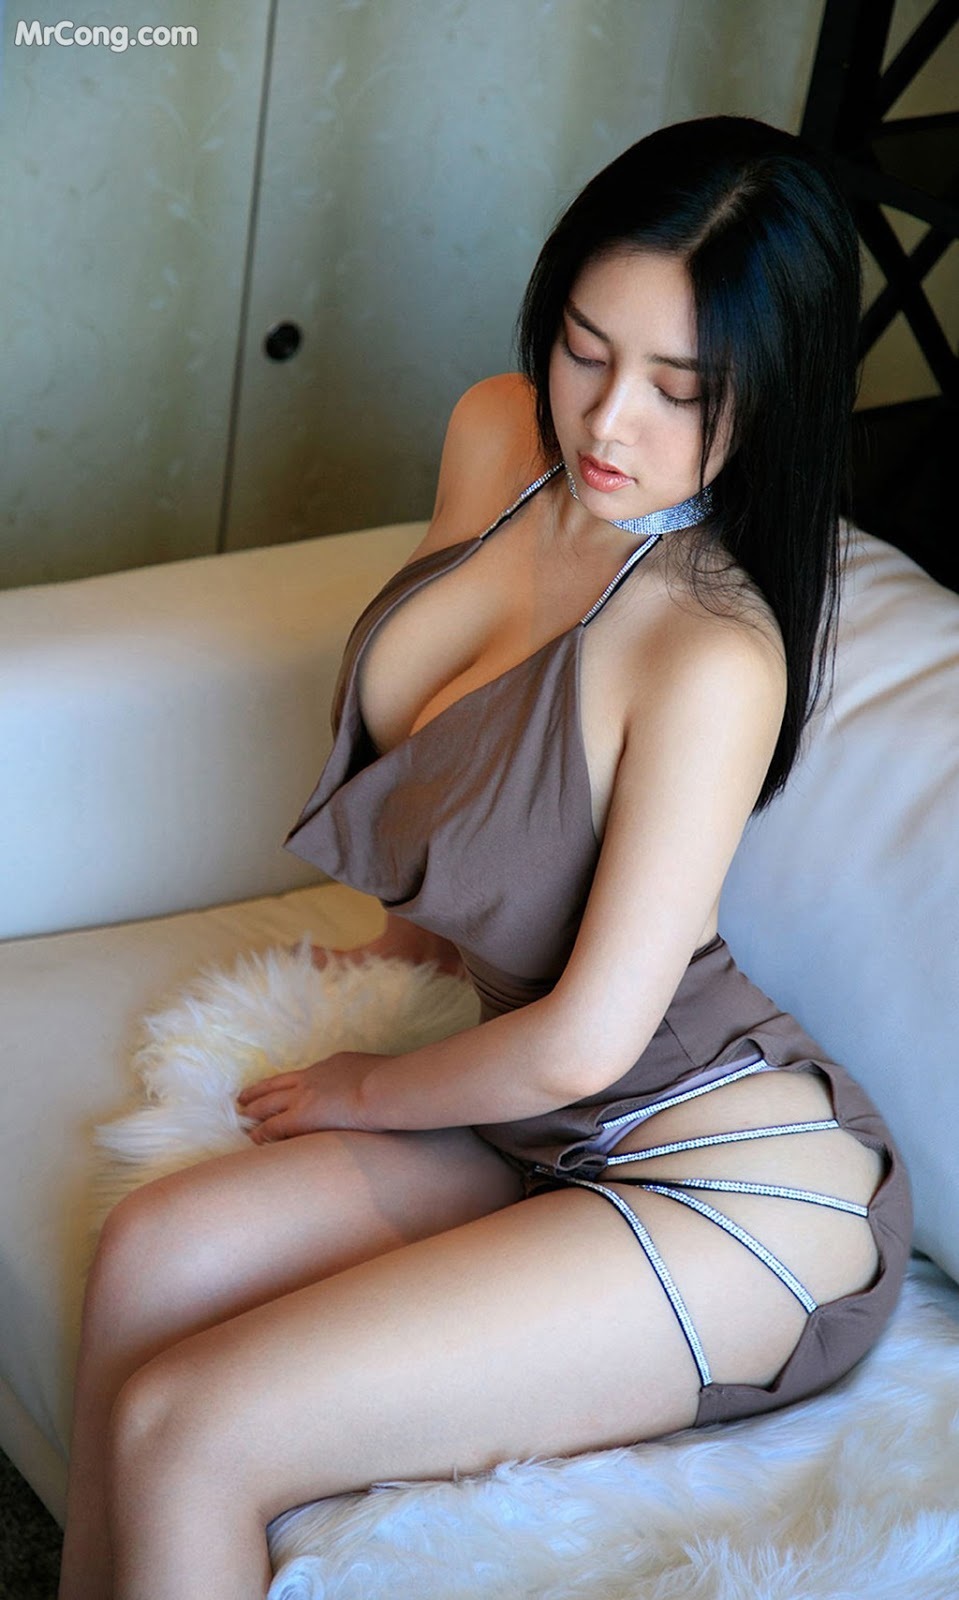 UGIRLS - Ai You Wu App No.1566: Anna 苏拉 (34 pictures)